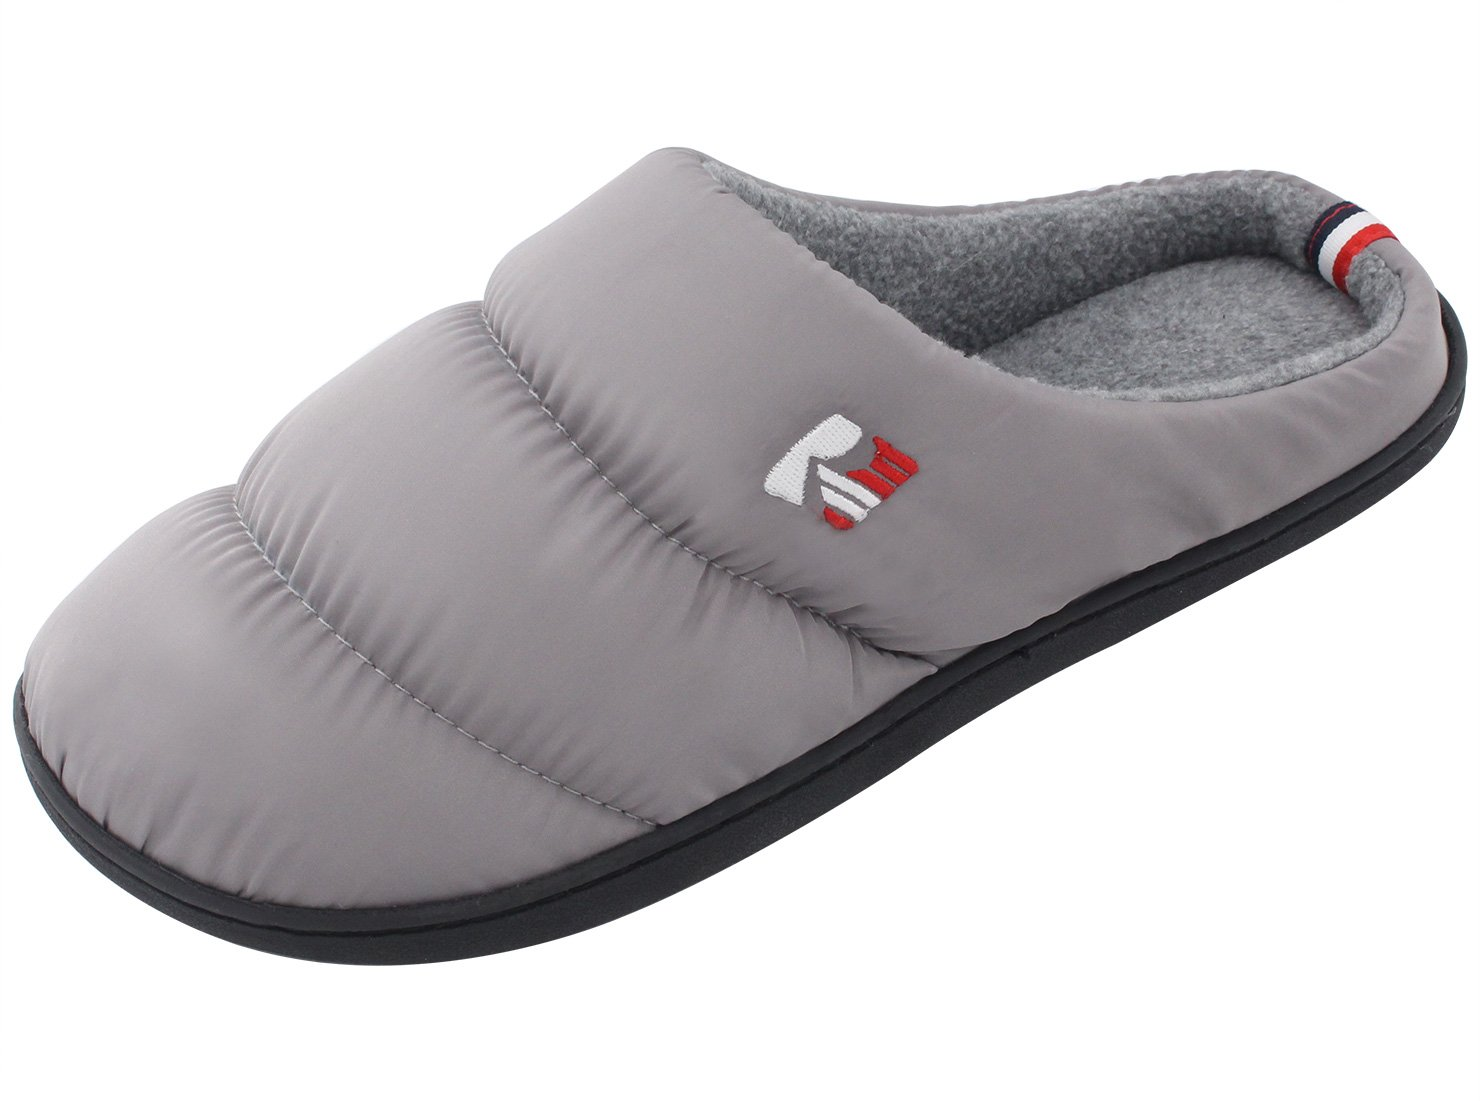 RockDove Women's Winter Memory Foam House Slippers, Quilted Snow Shoe Down Style Warm Cozy Soft Slip On Clogs for Home & Lounging (Medium (US 7-8), Light Gray)